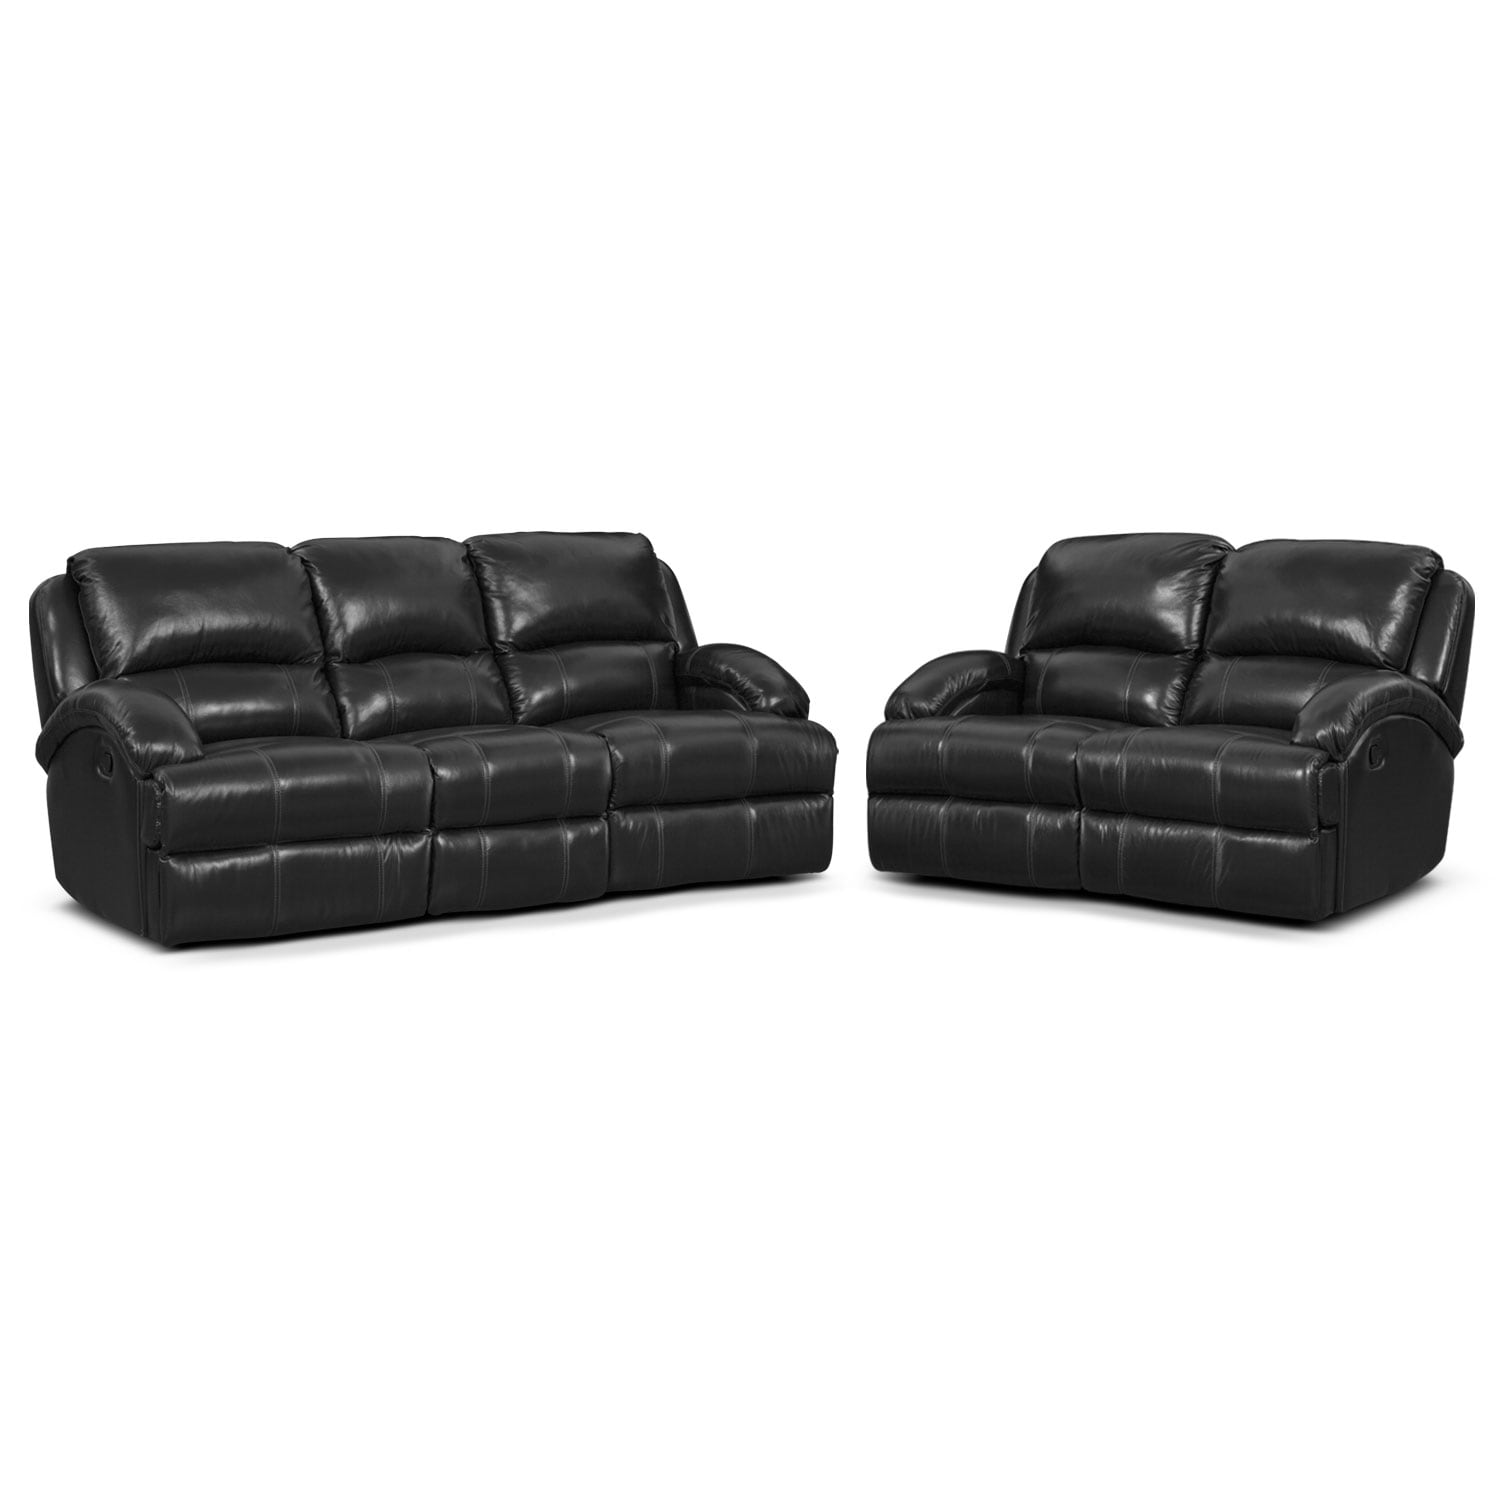 Nolan Dual Reclining Sofa and Reclining Loveseat Set - Black